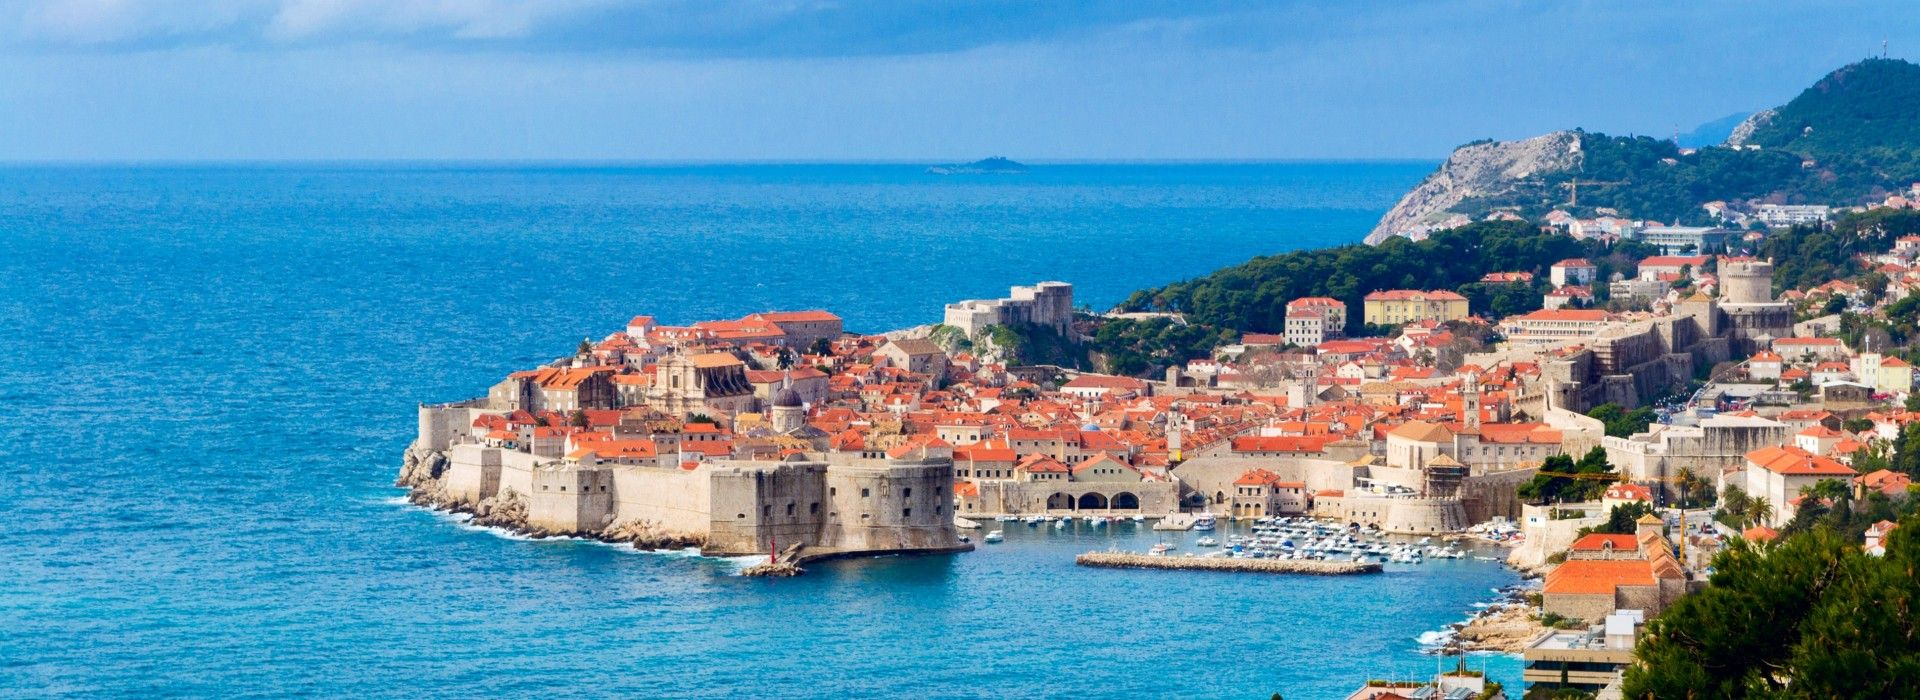 Cultural, religious and historic sites Tours in Croatia